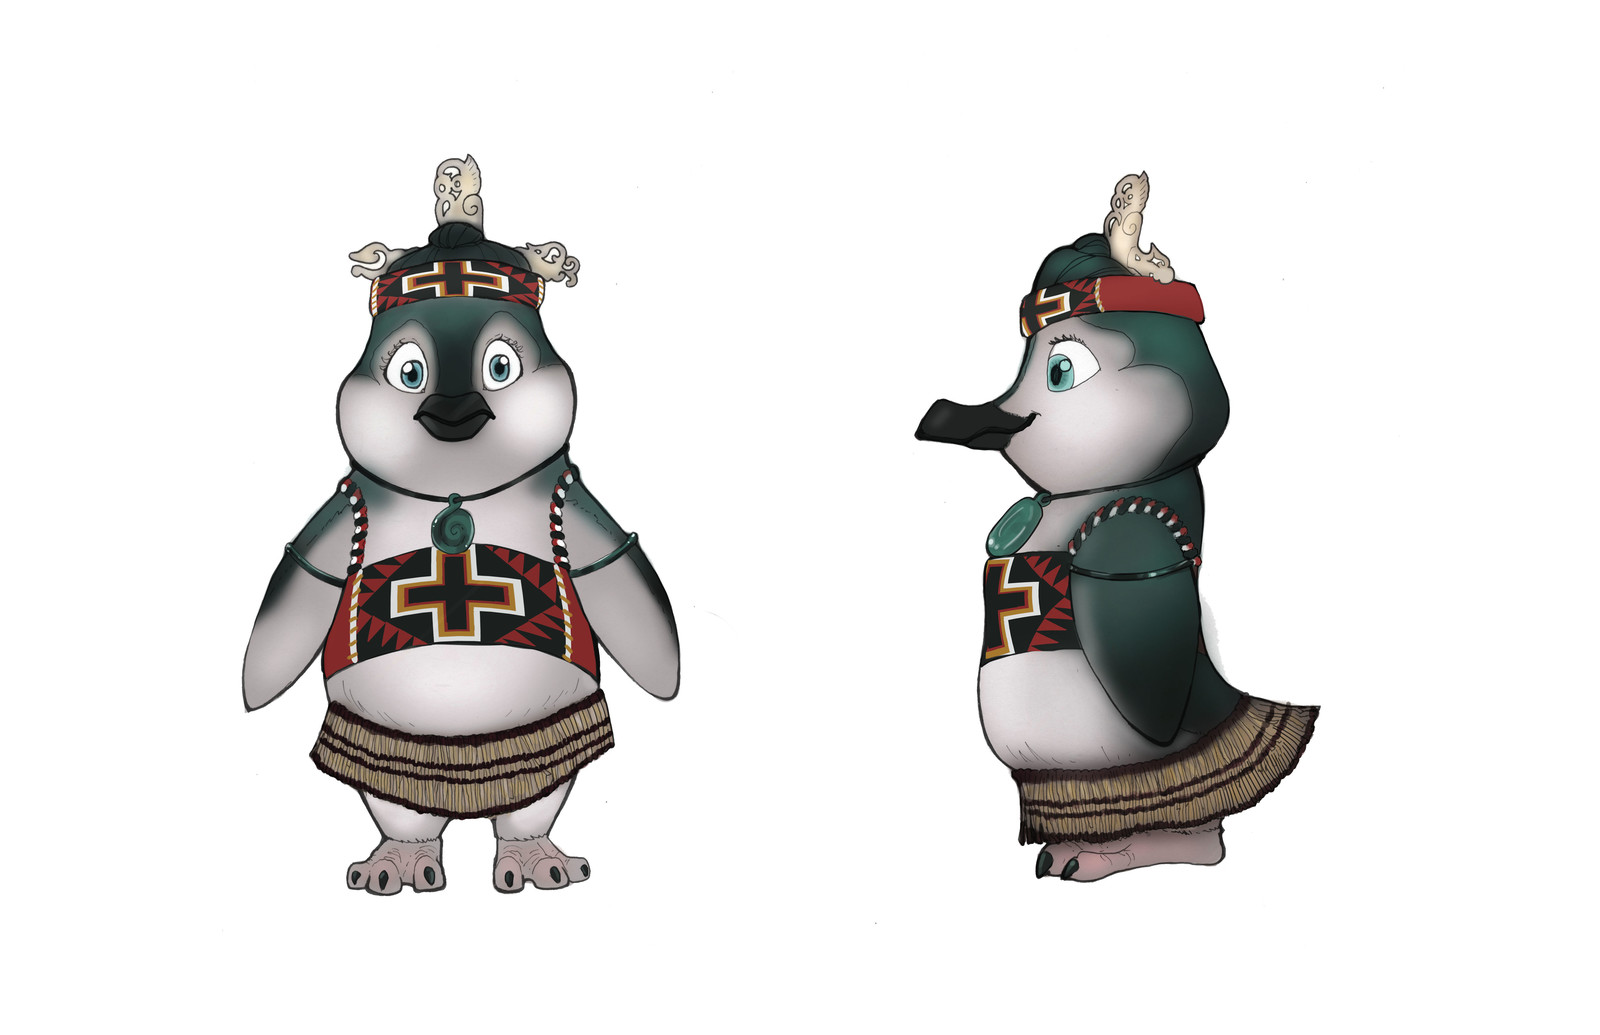 Female Blue Penguin, inspired by the Maori tribes in New Zealand.